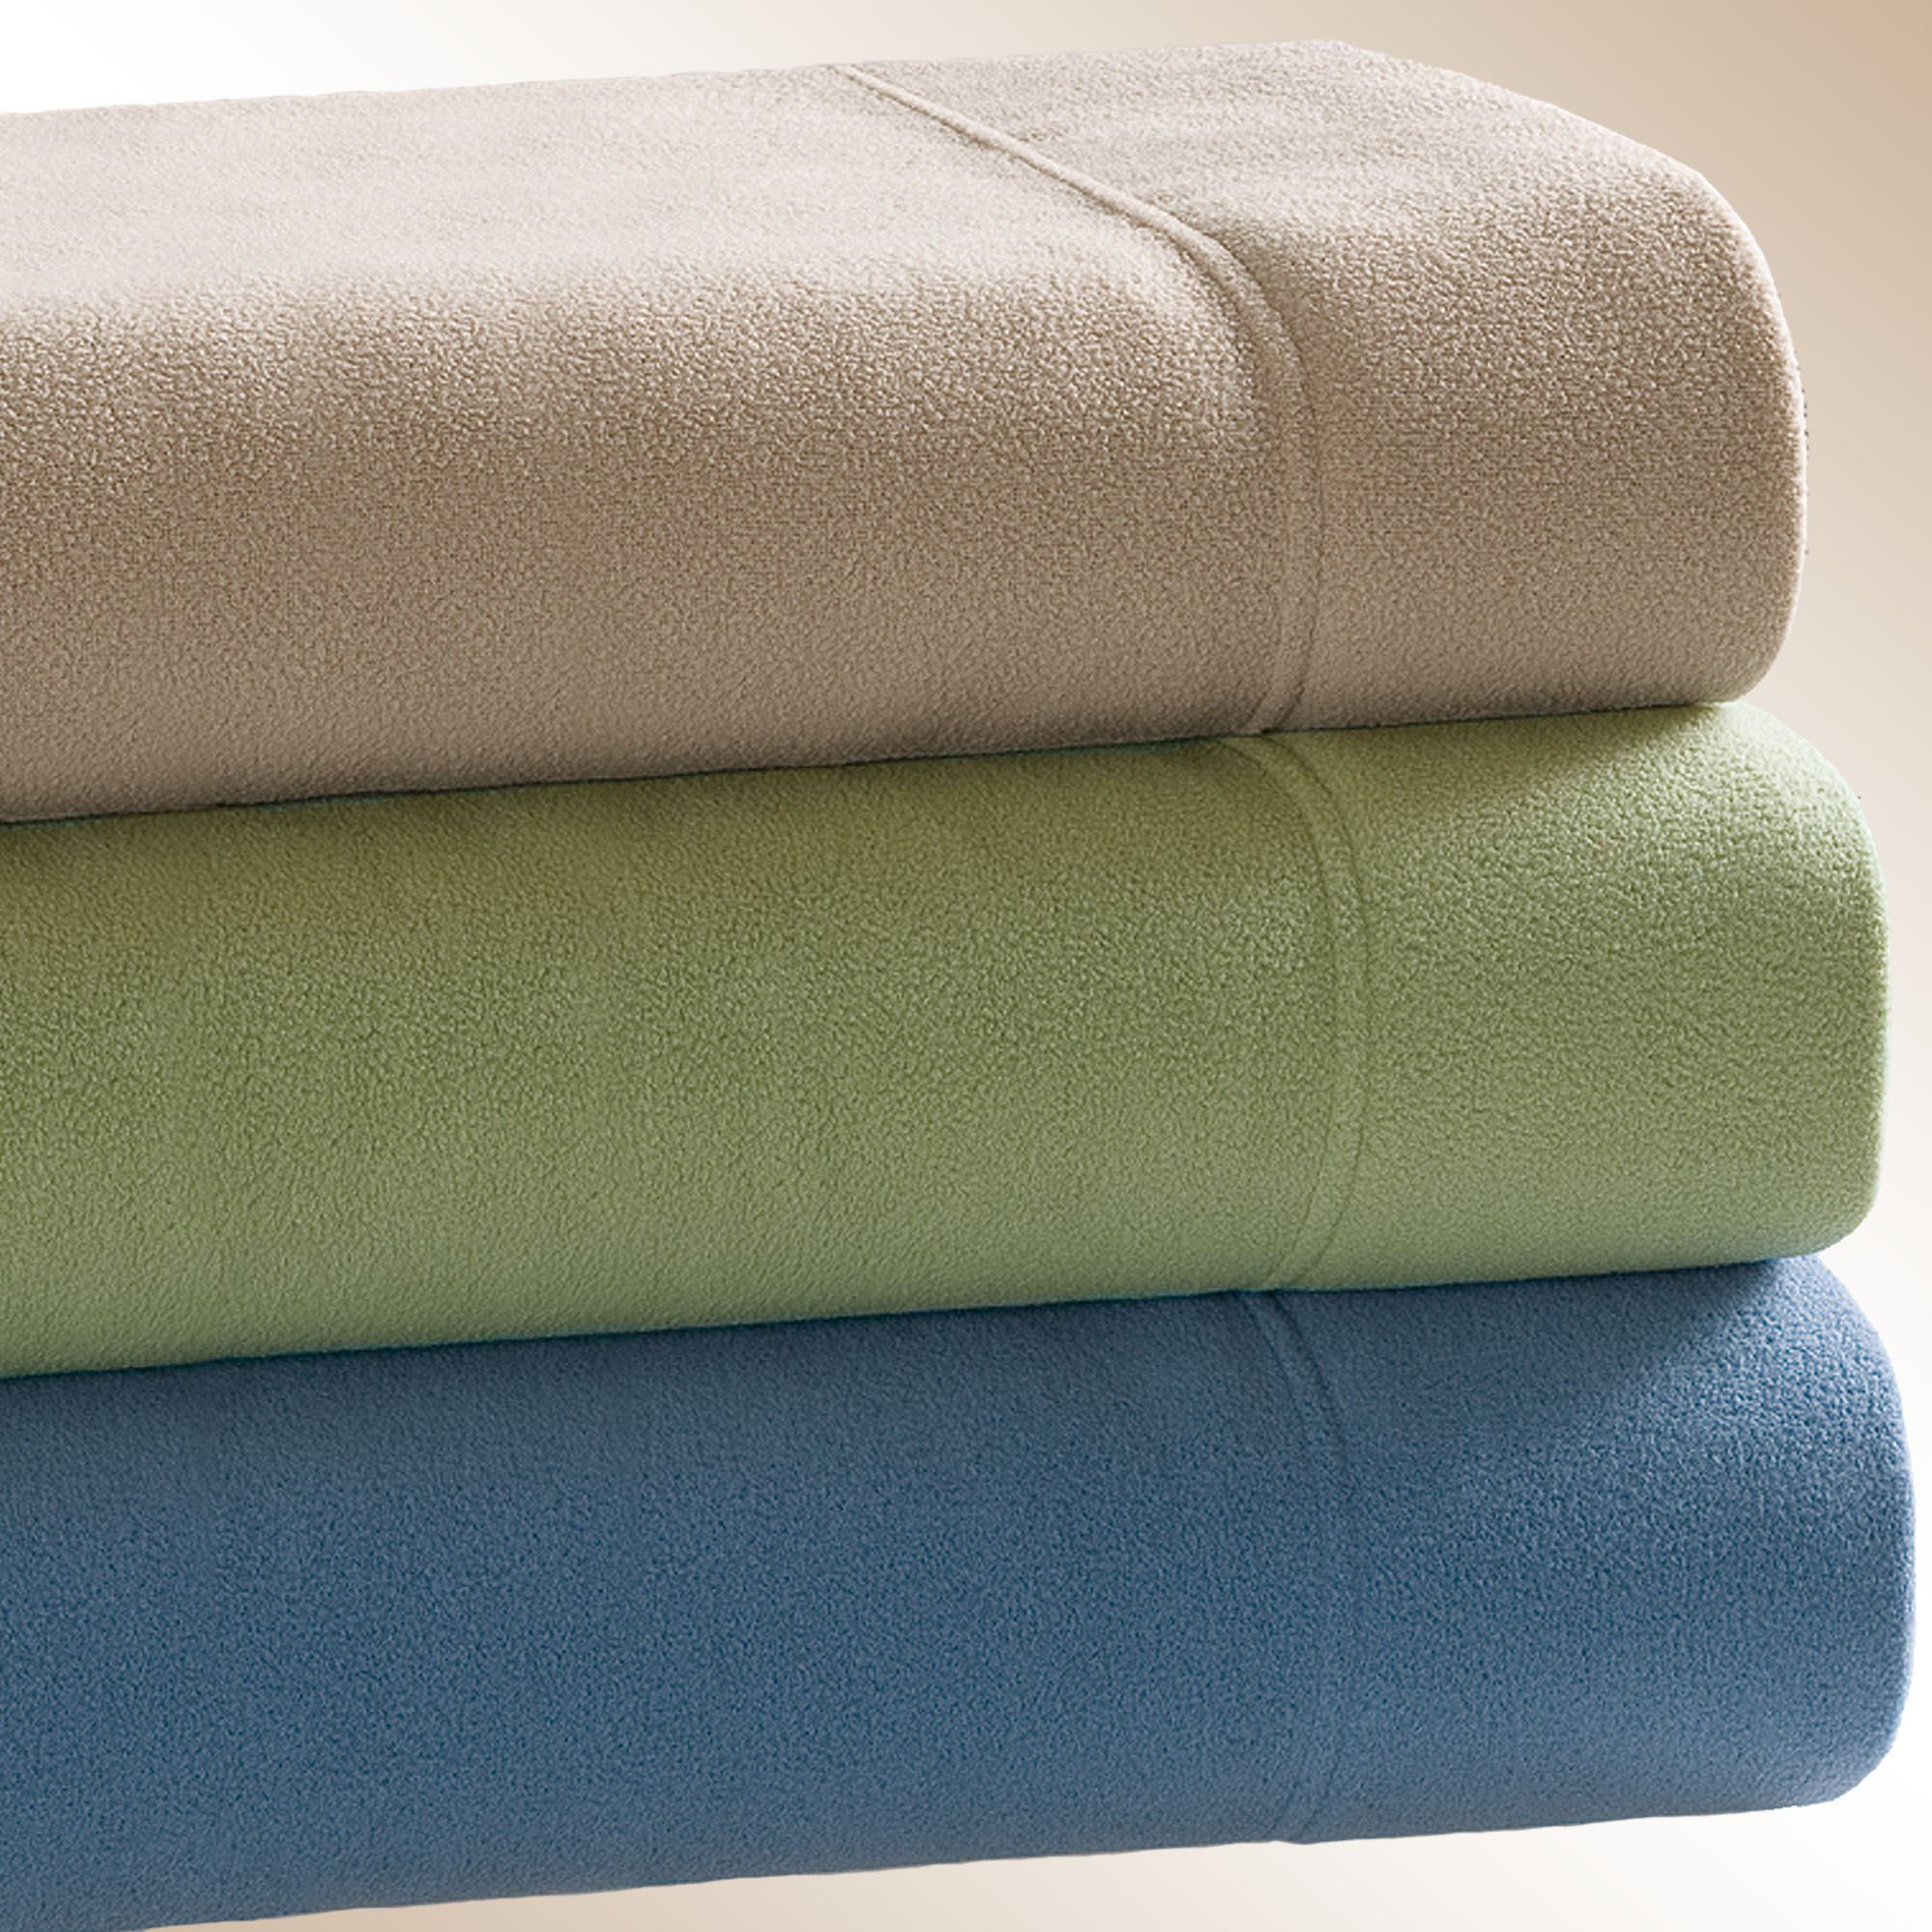 King Sheet Sets Clearance